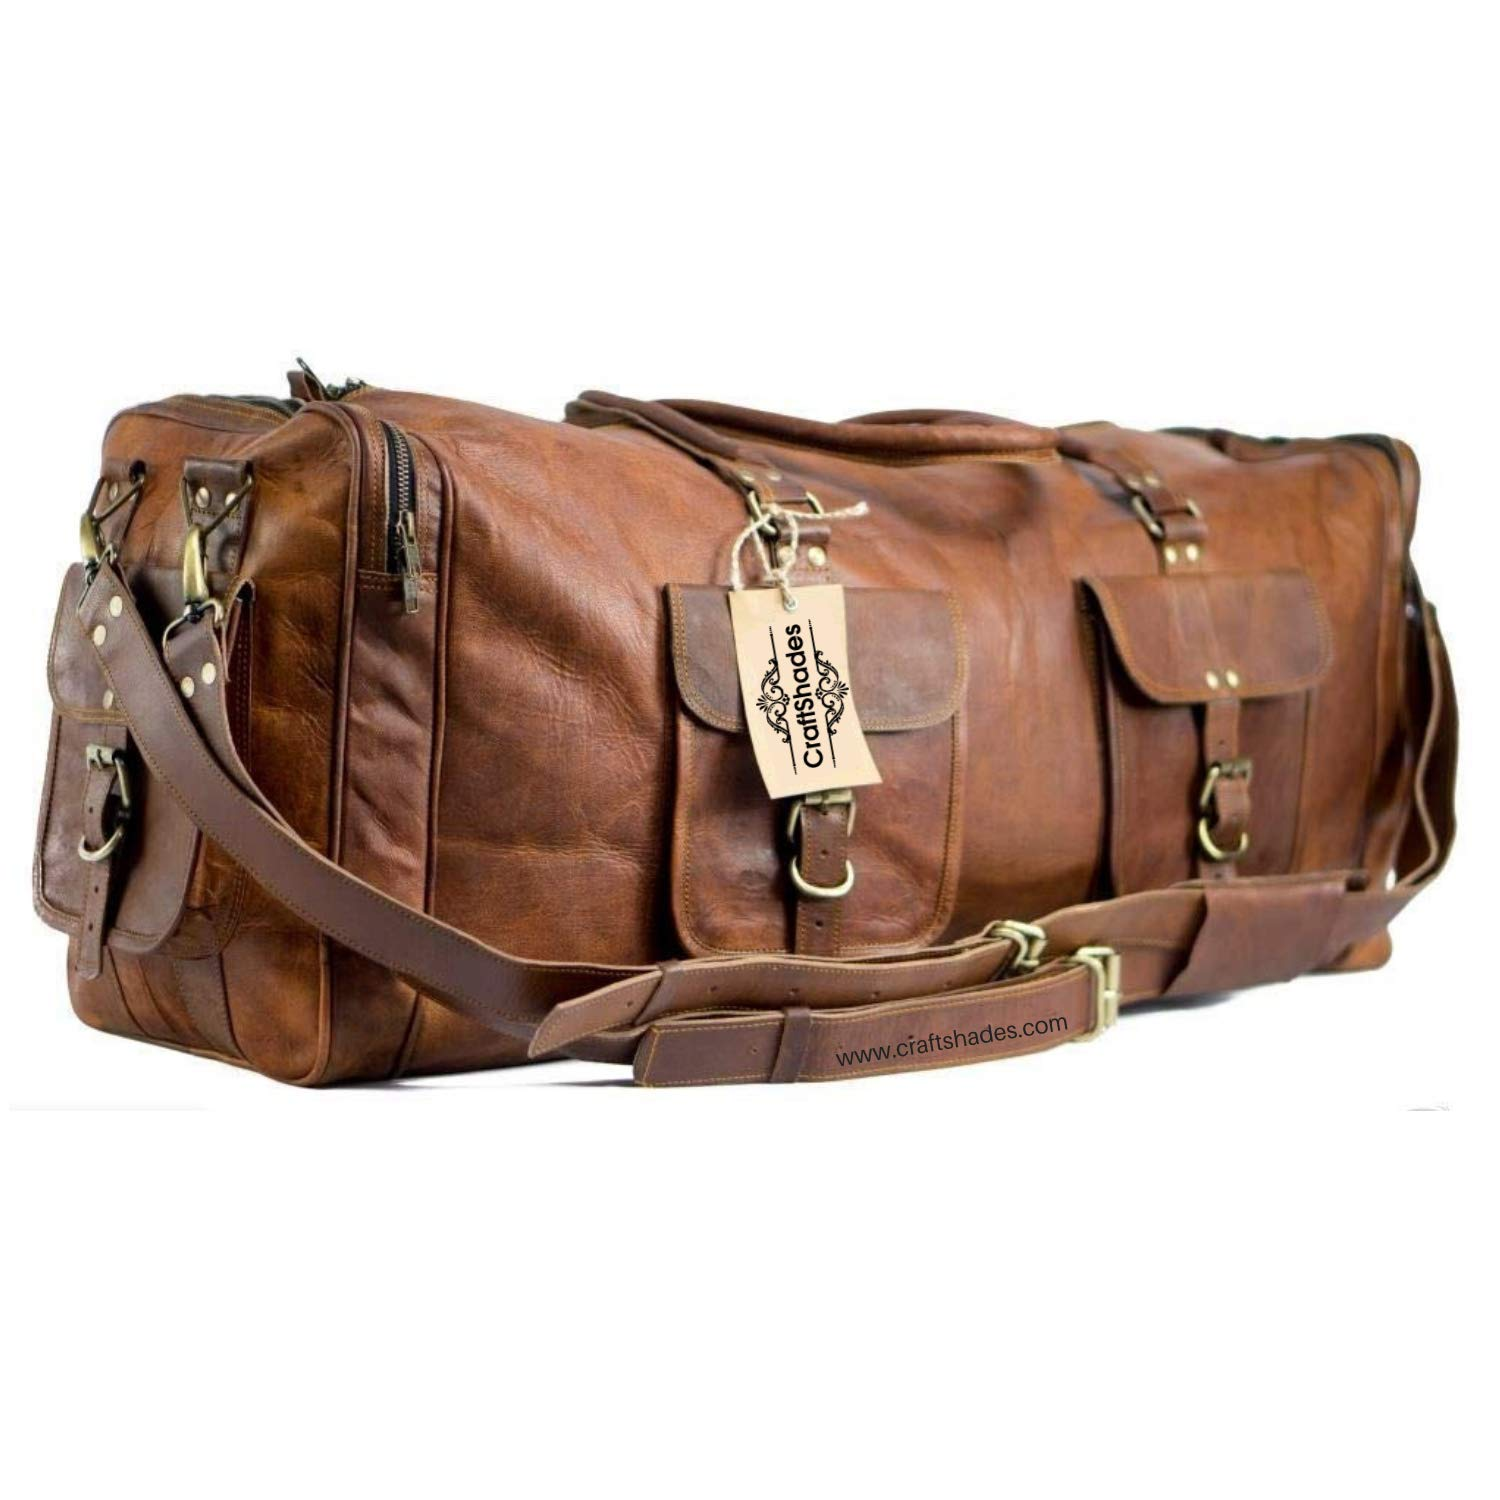 9fa9671ff6d1 CraftShades Vintage Handcrafted Leather Duffel Bag Overnight Bag Weekend Bag  Leather Gym Sports (20 inches)  Amazon.in  Bags